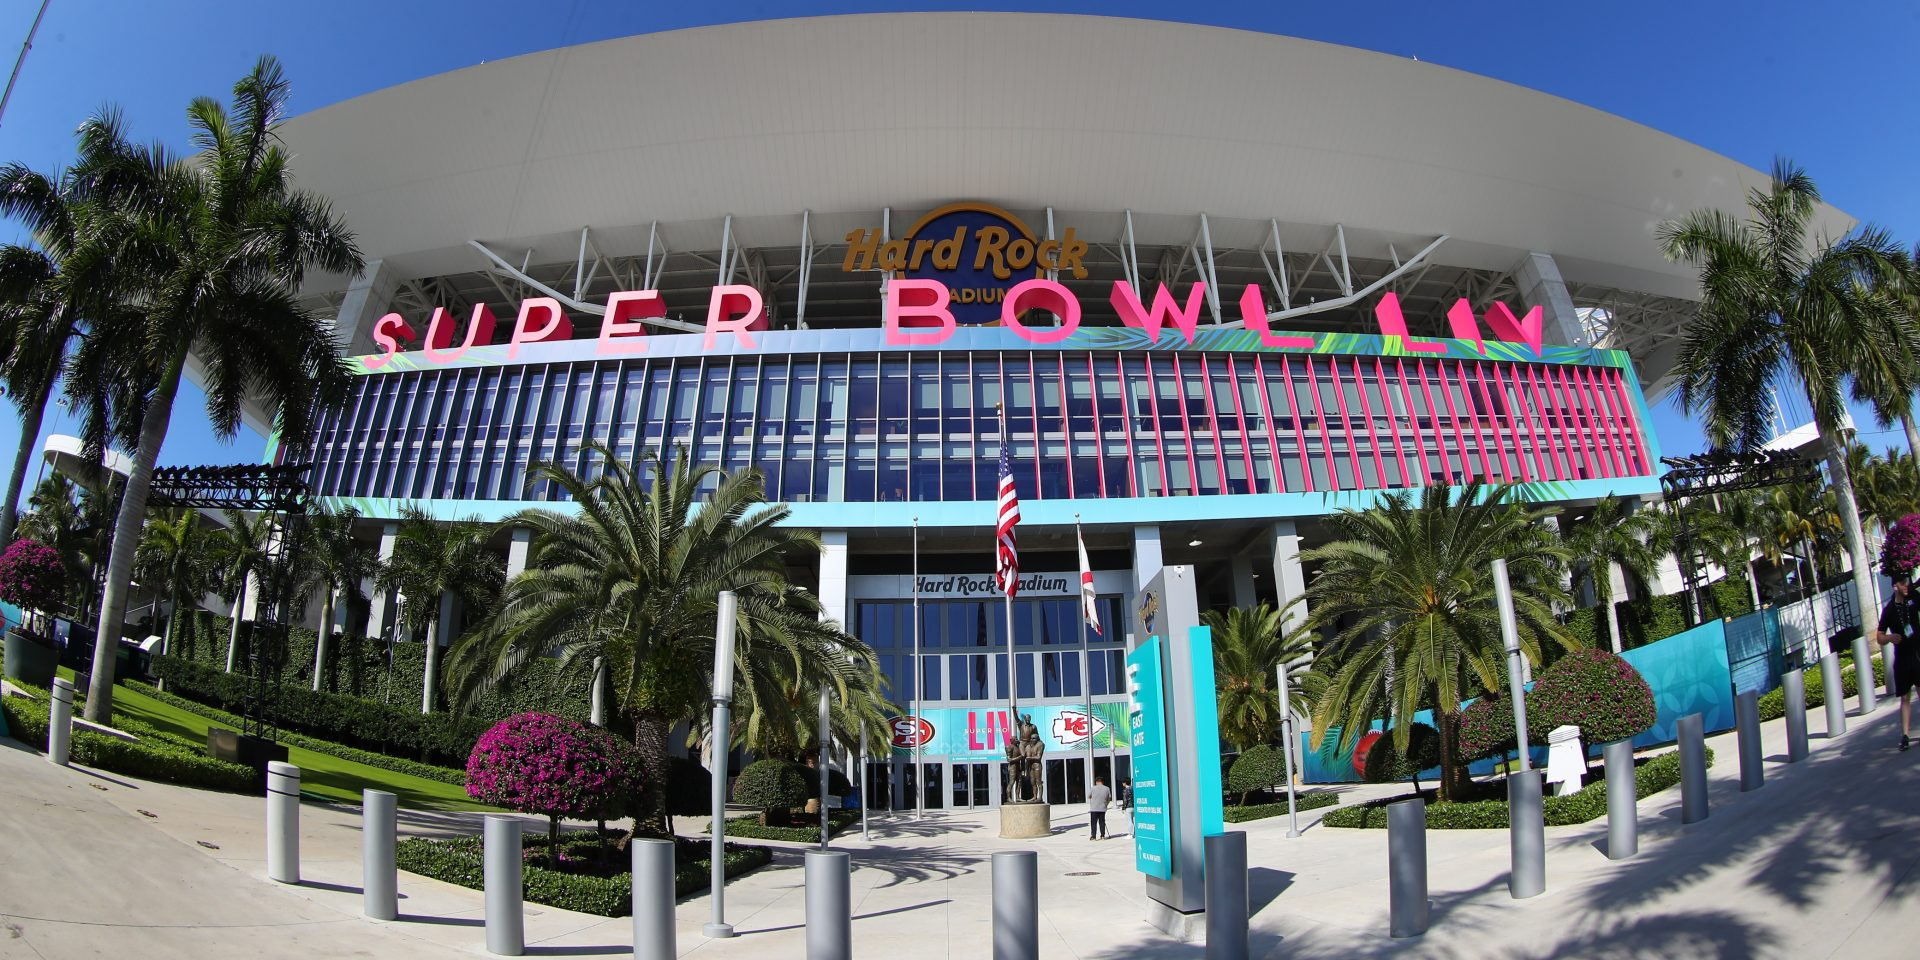 NFL, Populous Get Creative With Super Bowl Logistics